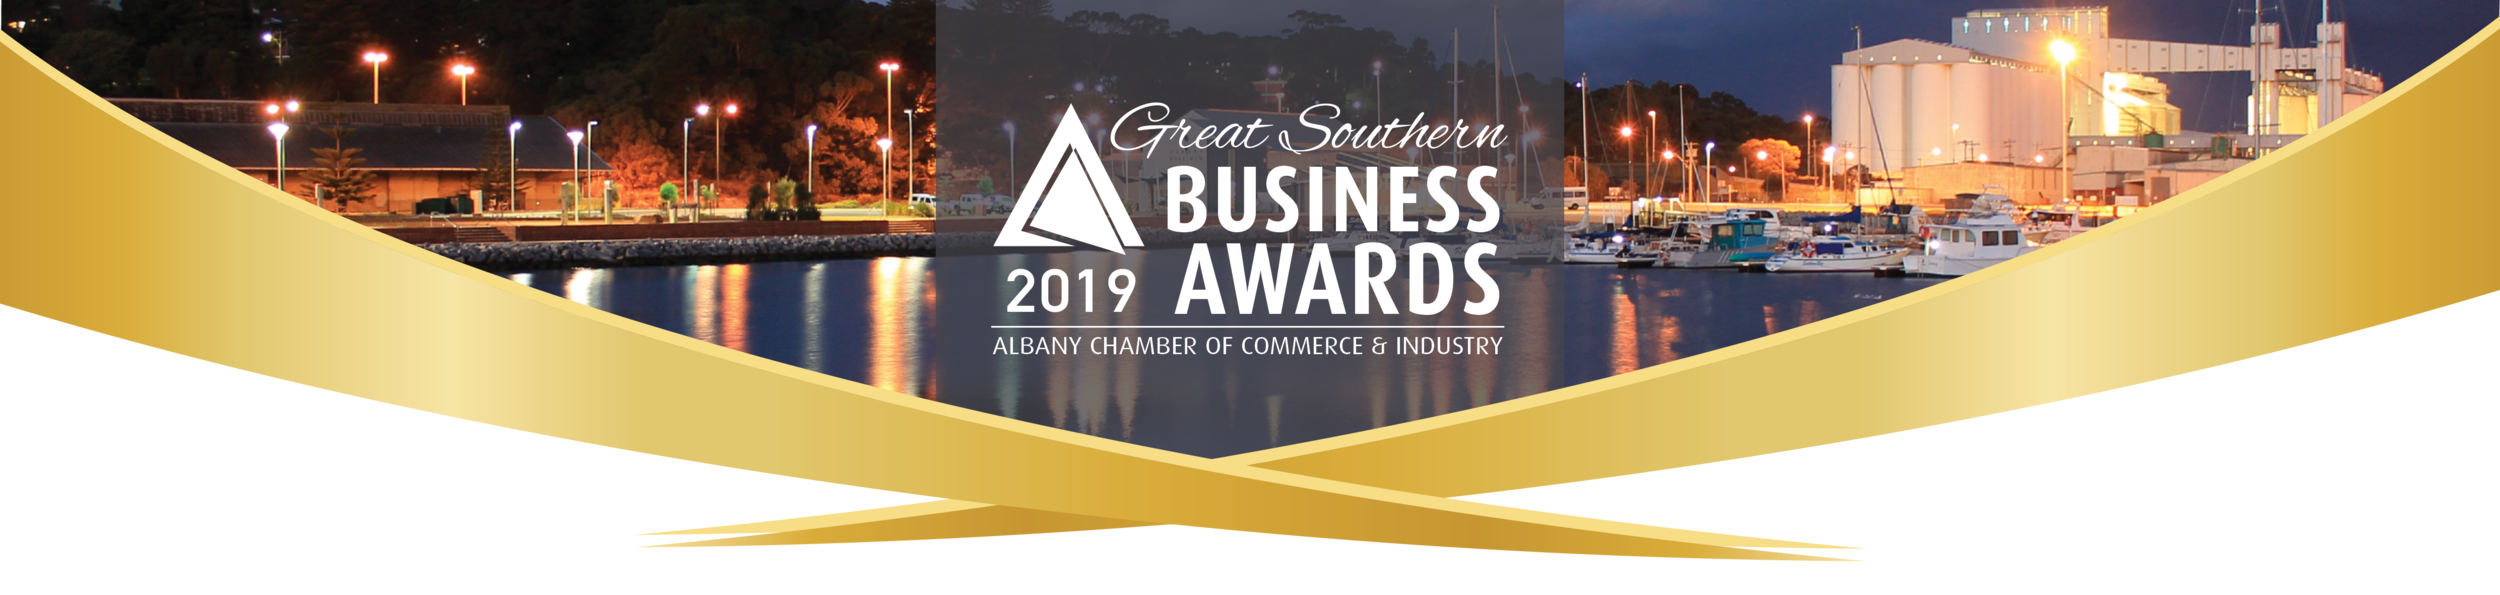 2019 Business Awards Banner Generic White.png